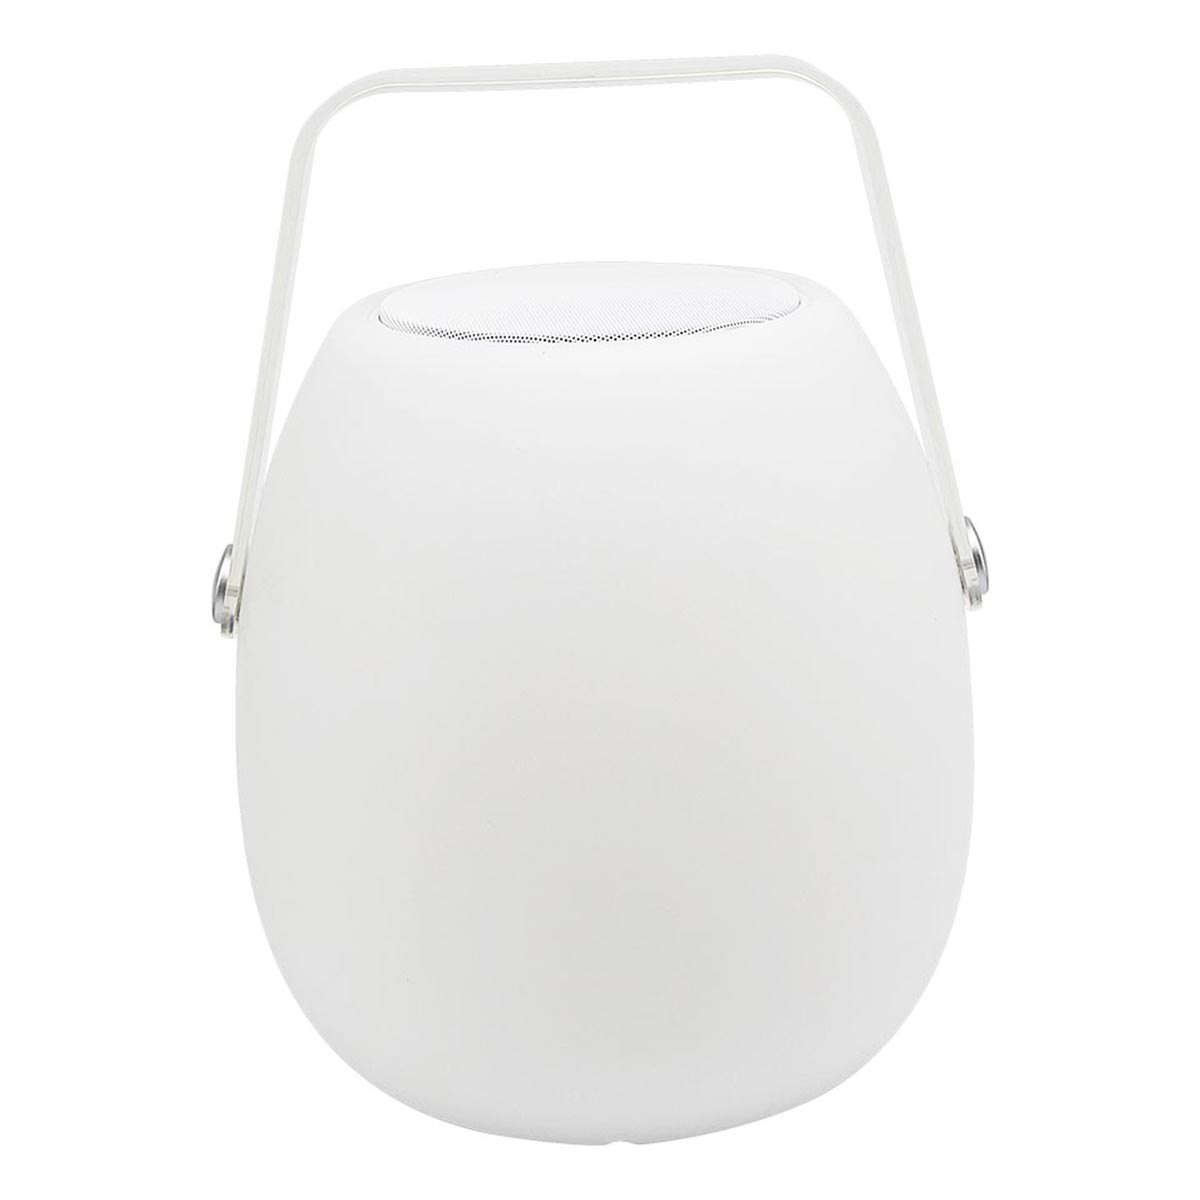 Baladeuse enceinte bluetooth sans fil LED blanc/multicolore dimmable SO PLAY H30cm avec télécommande - REDDECO.com